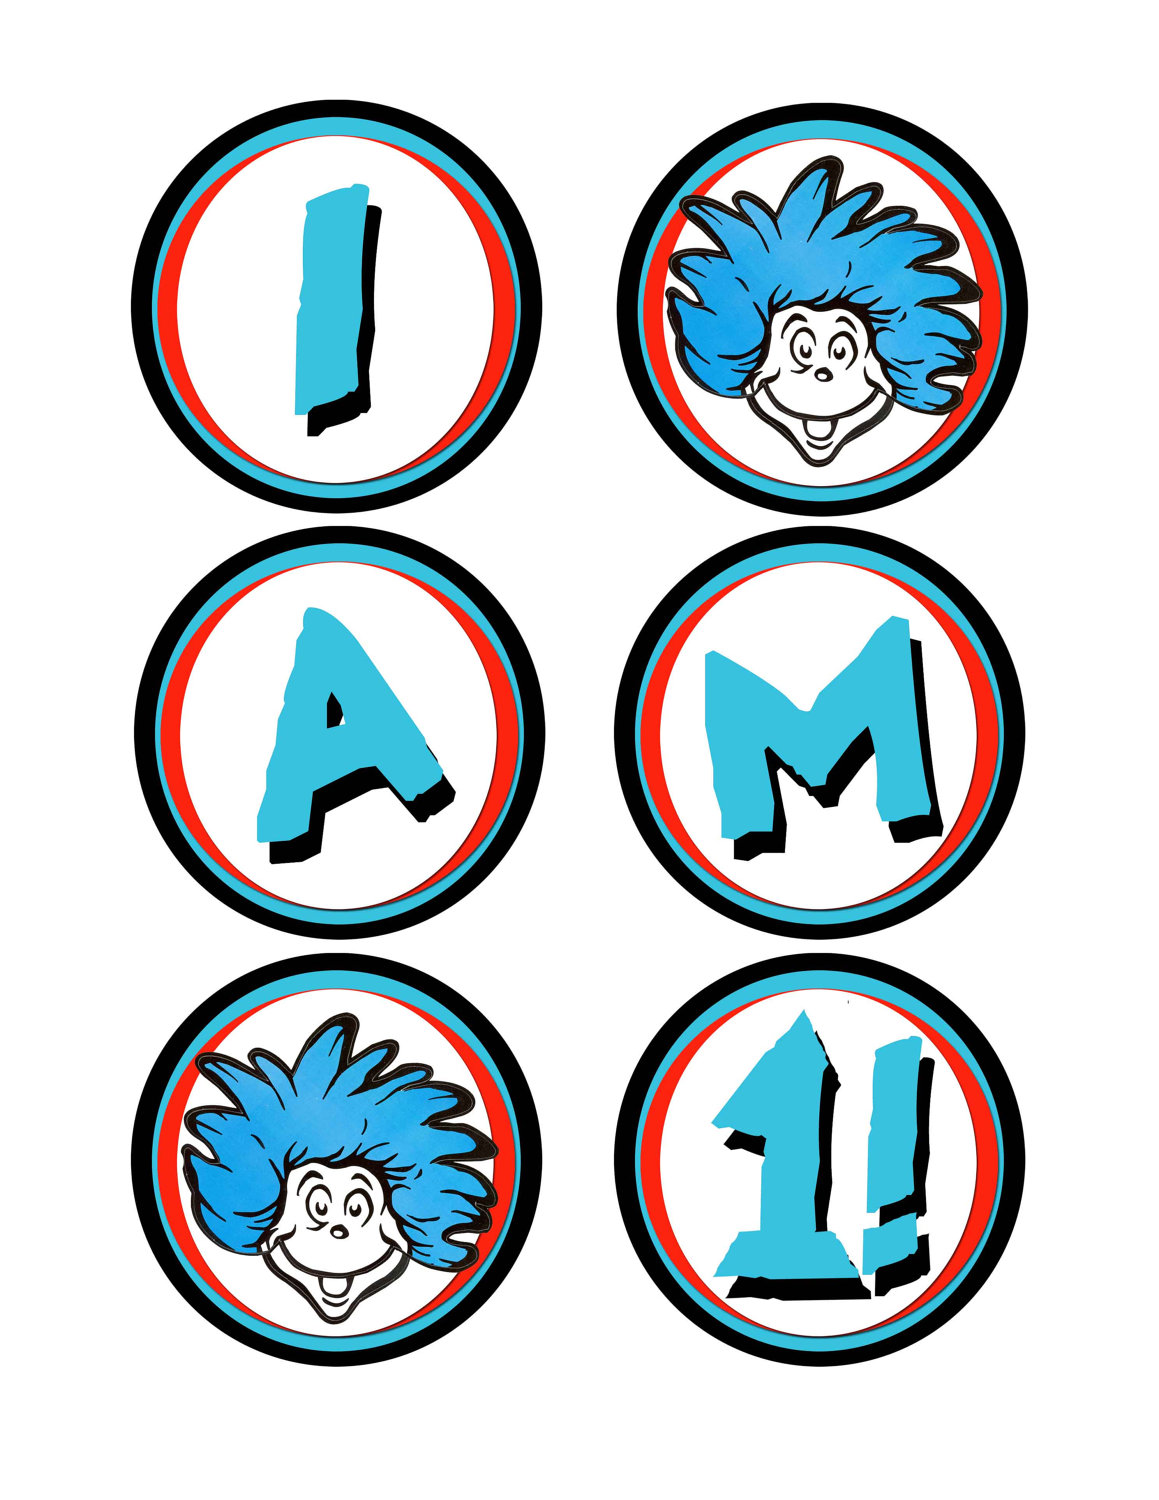 photo about Printable Images of Dr Seuss Characters referred to as Dr Seuss Figures Clipart at  Free of charge for